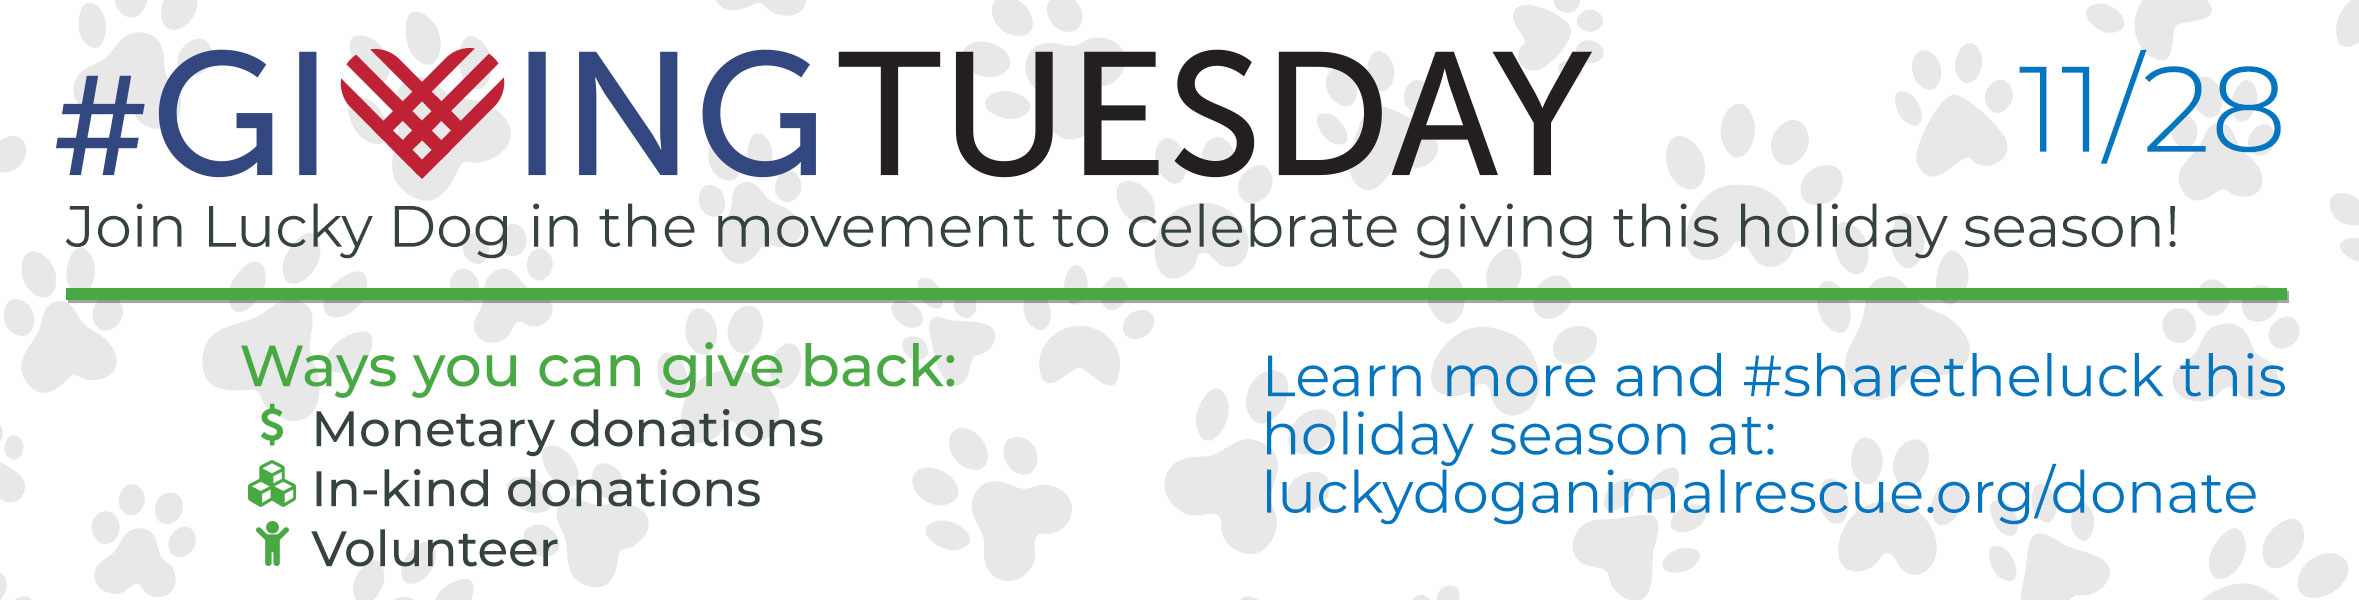 #Givingtuesday with Lucky Dog Animal Rescue